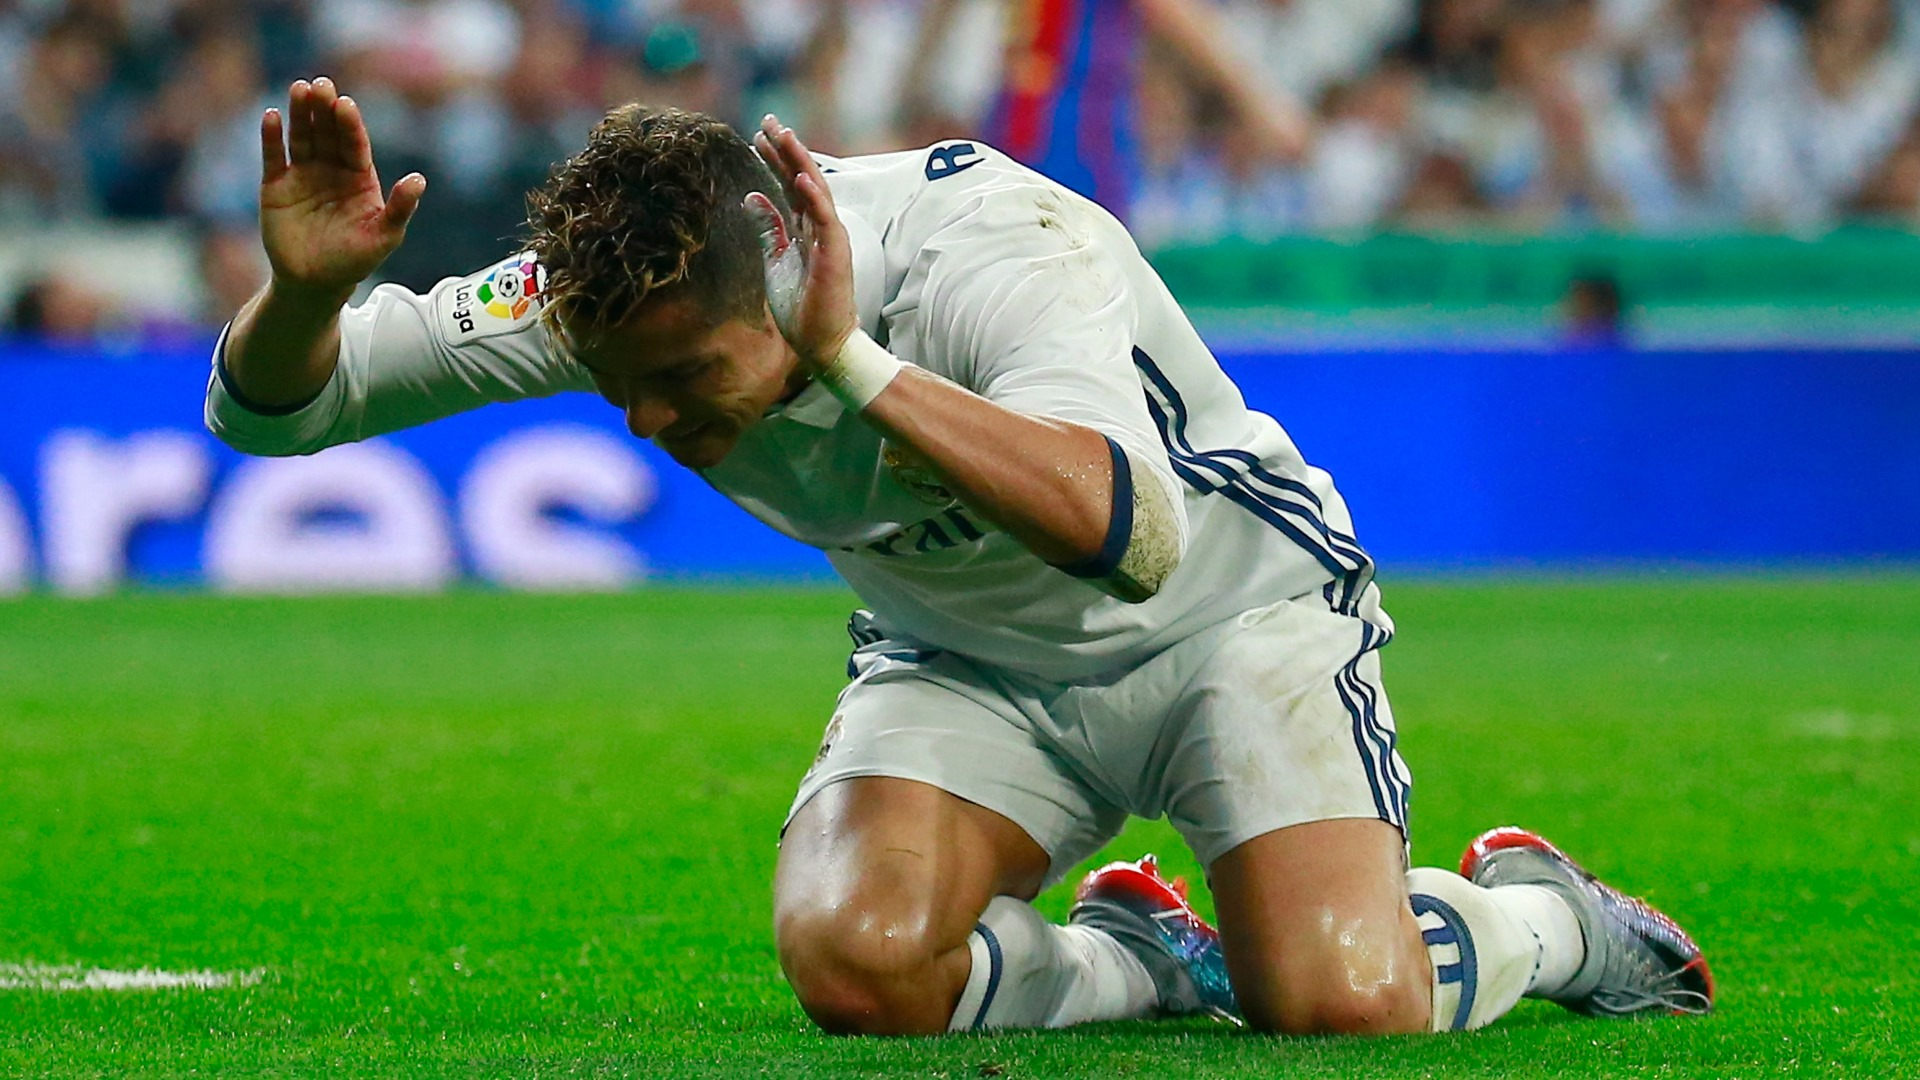 Real Madrid & Wales striker Gareth Bale sidelined by calf injury